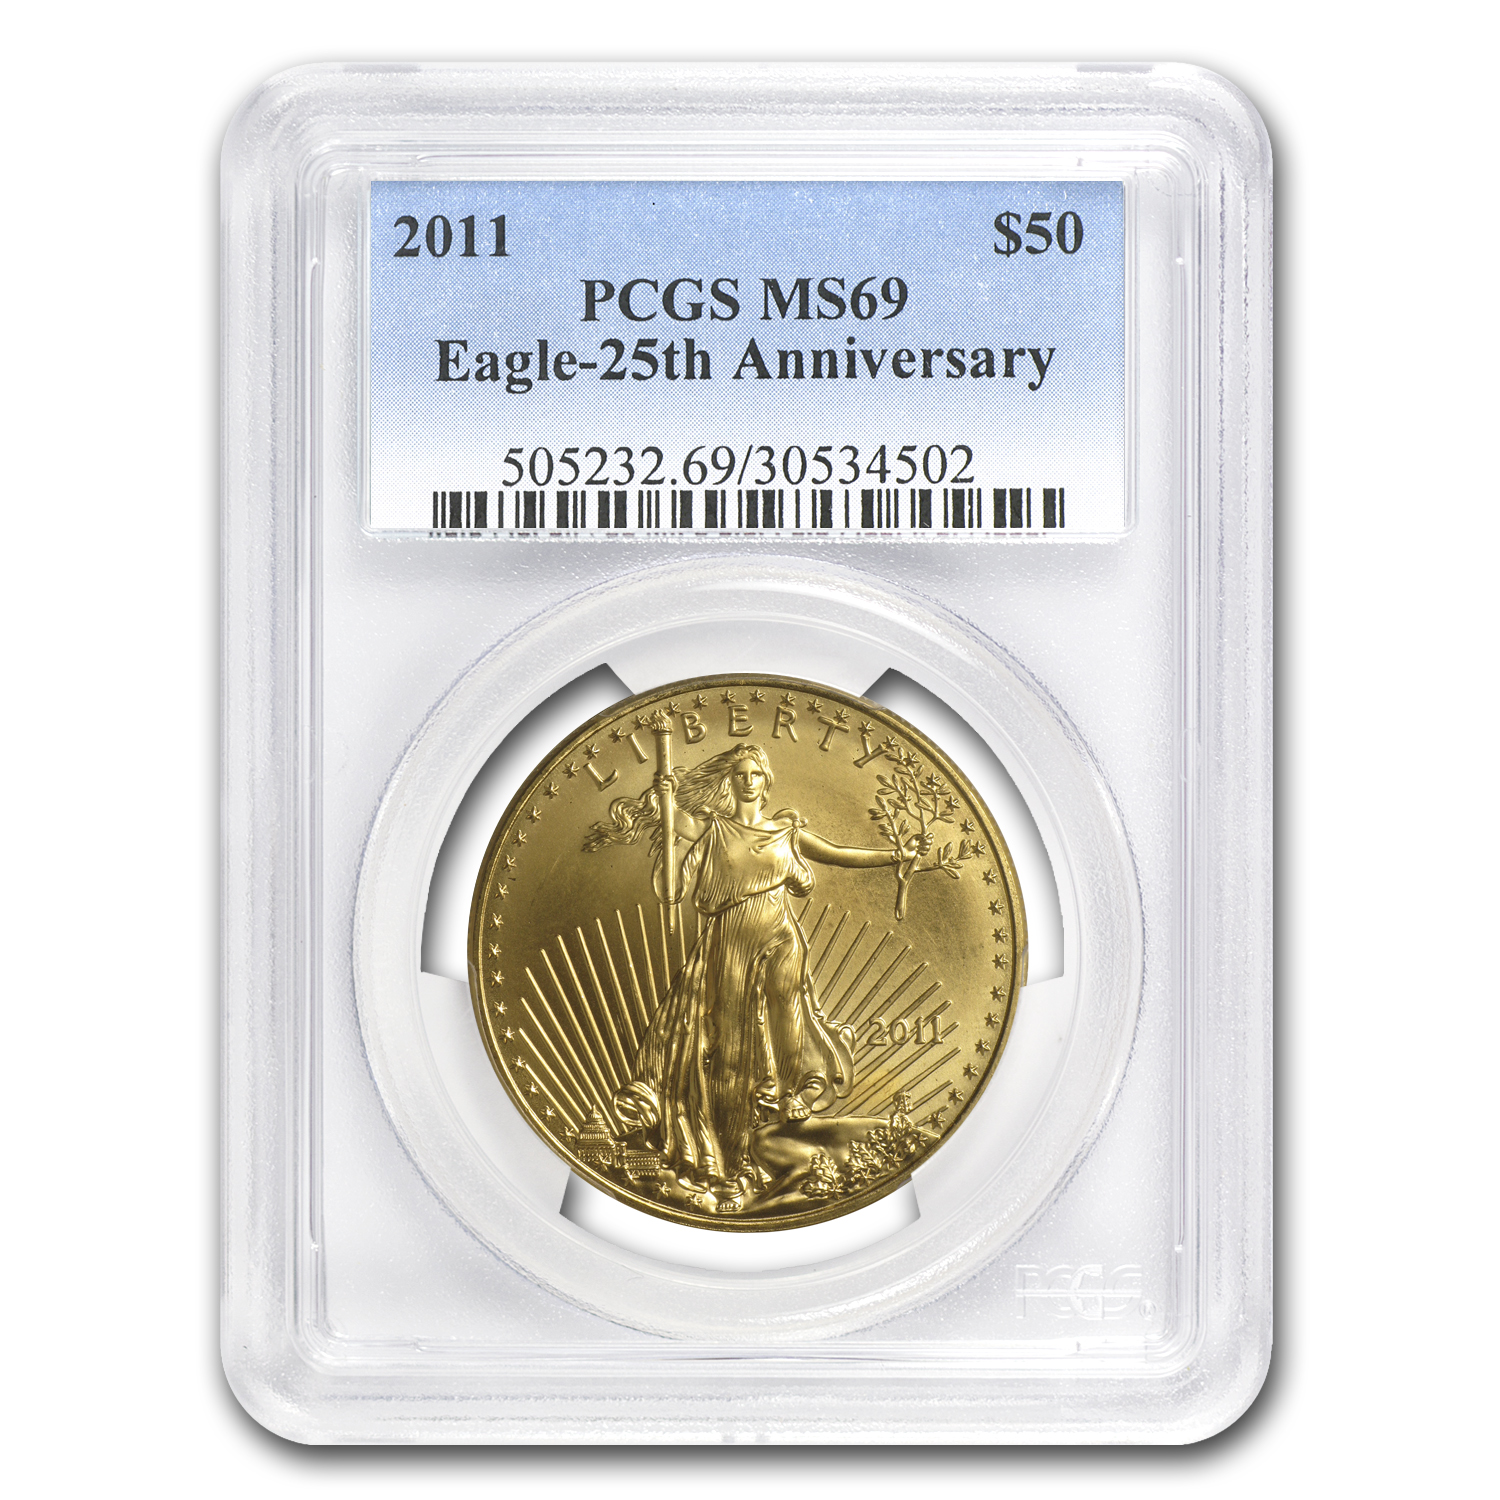 2011 1 oz Gold American Eagle MS-69 PCGS